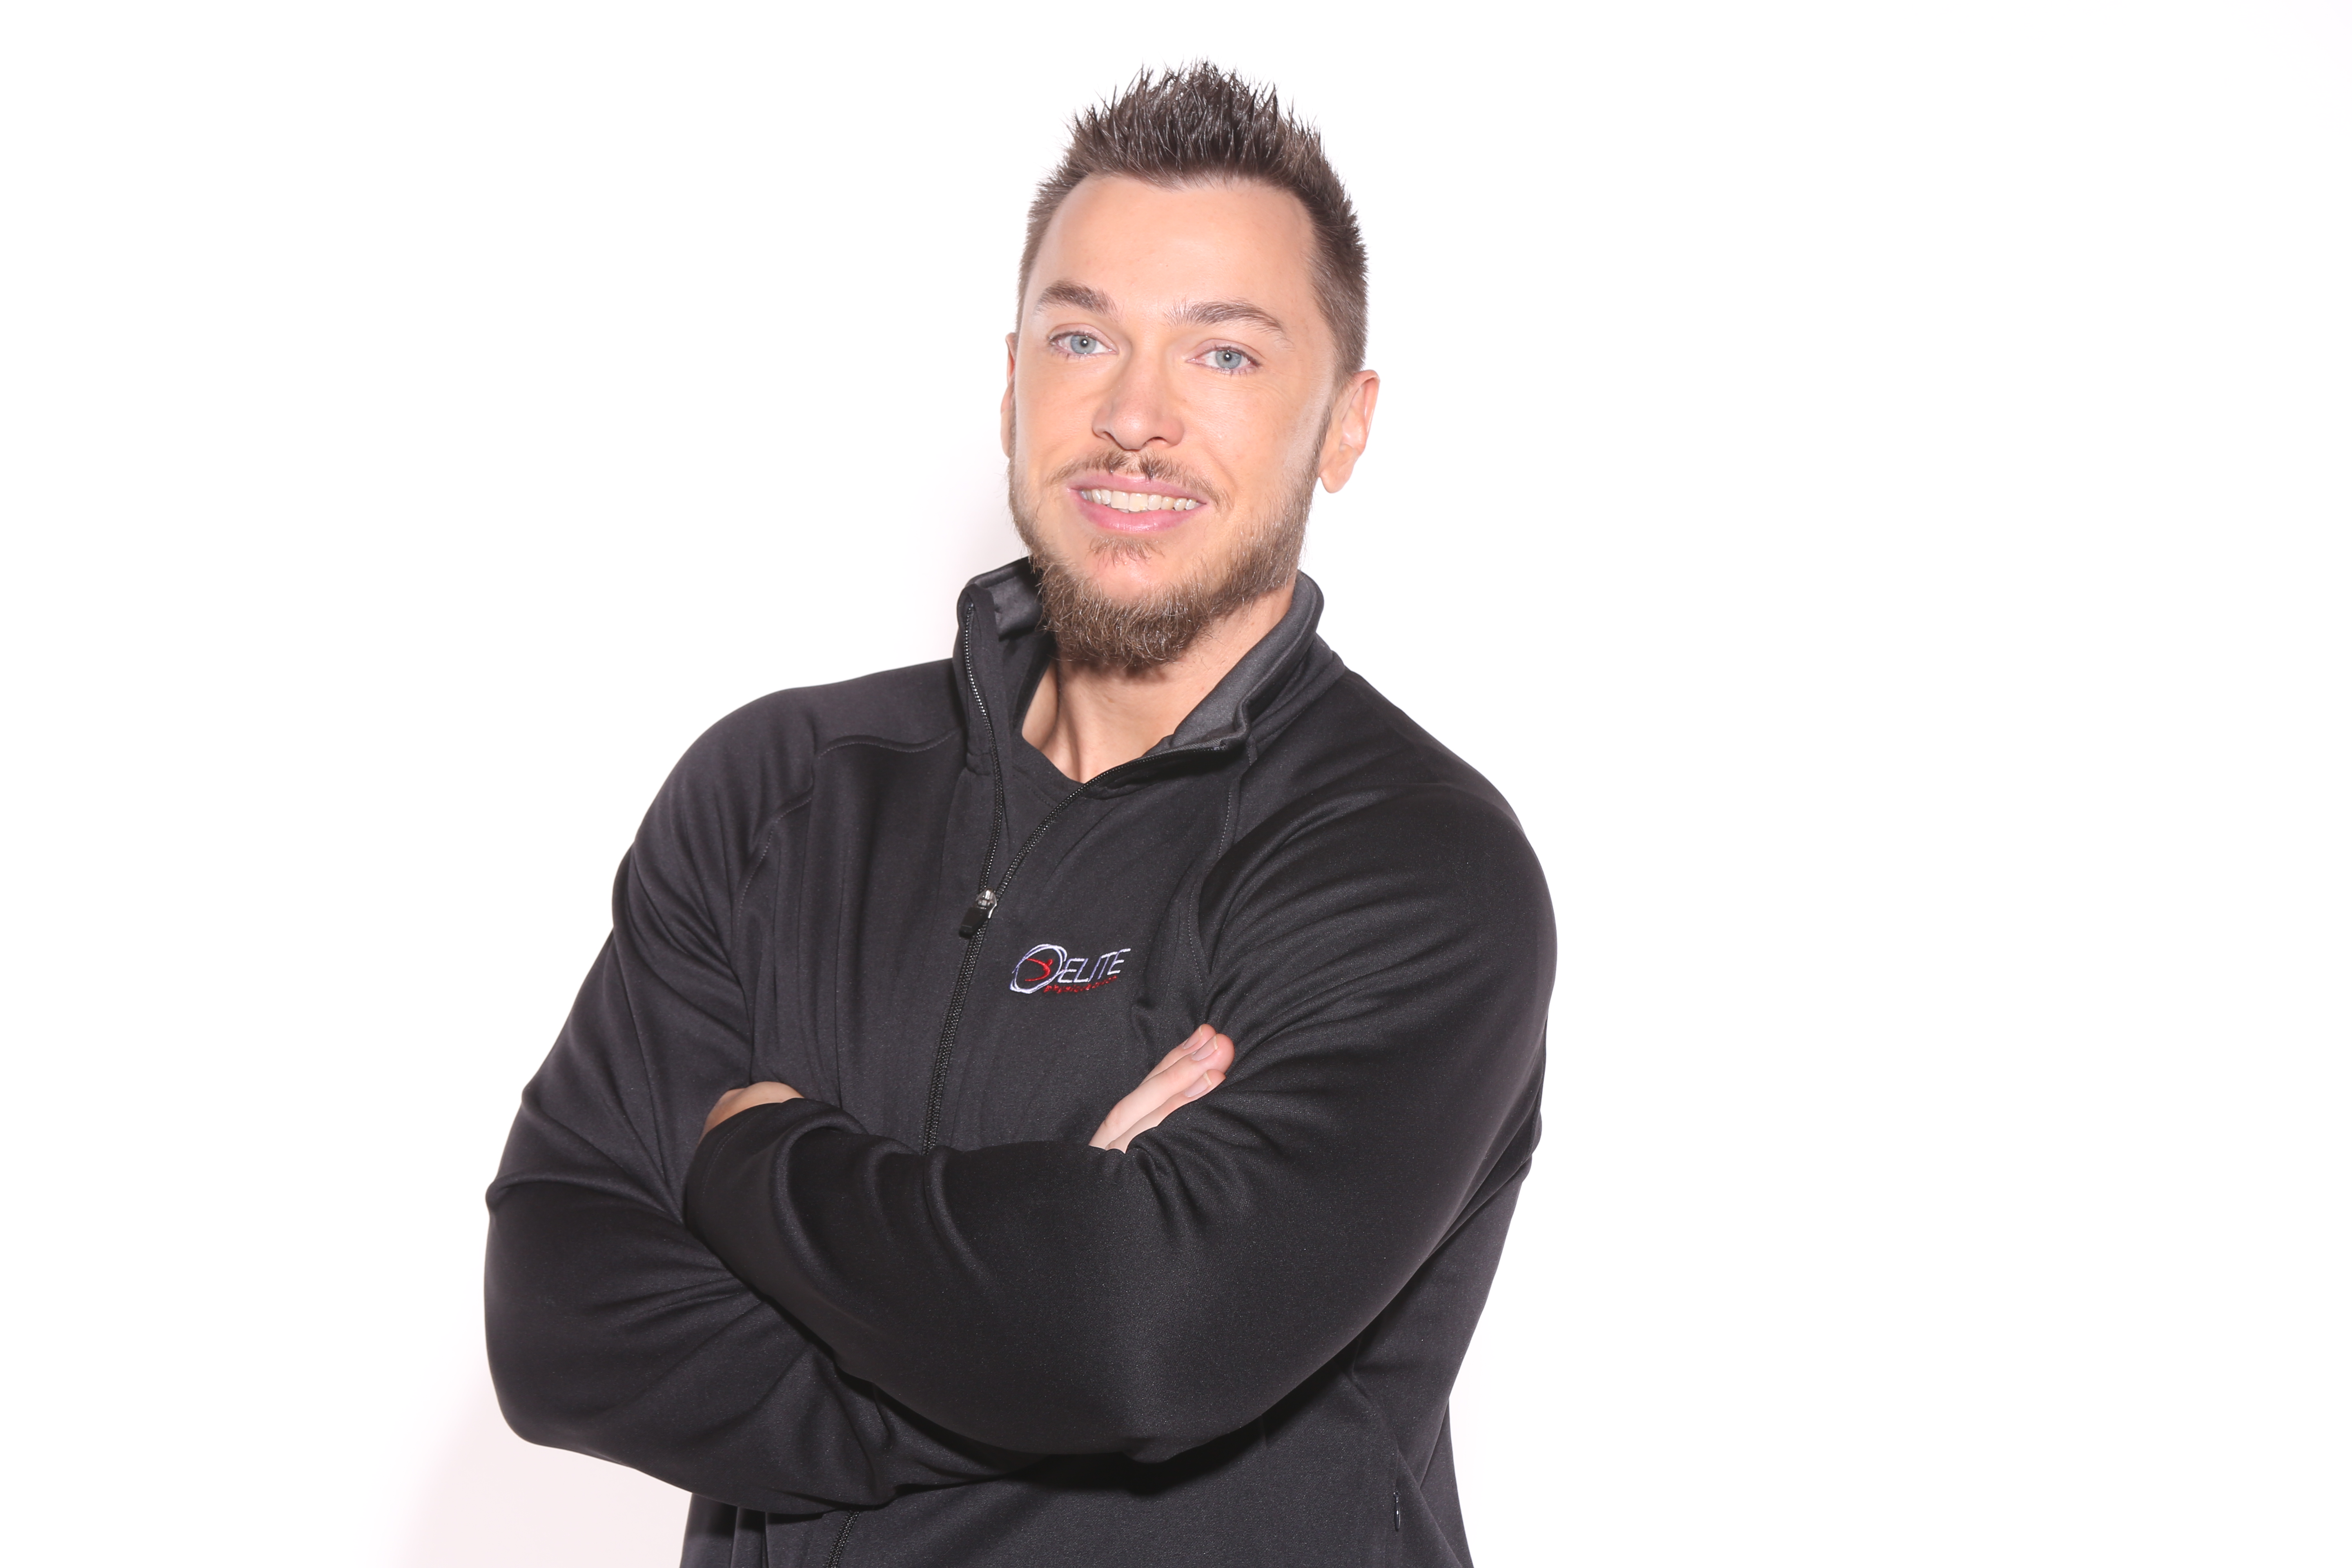 Personal Coaching with 90 Day Challenge Founder, Sean Everingham